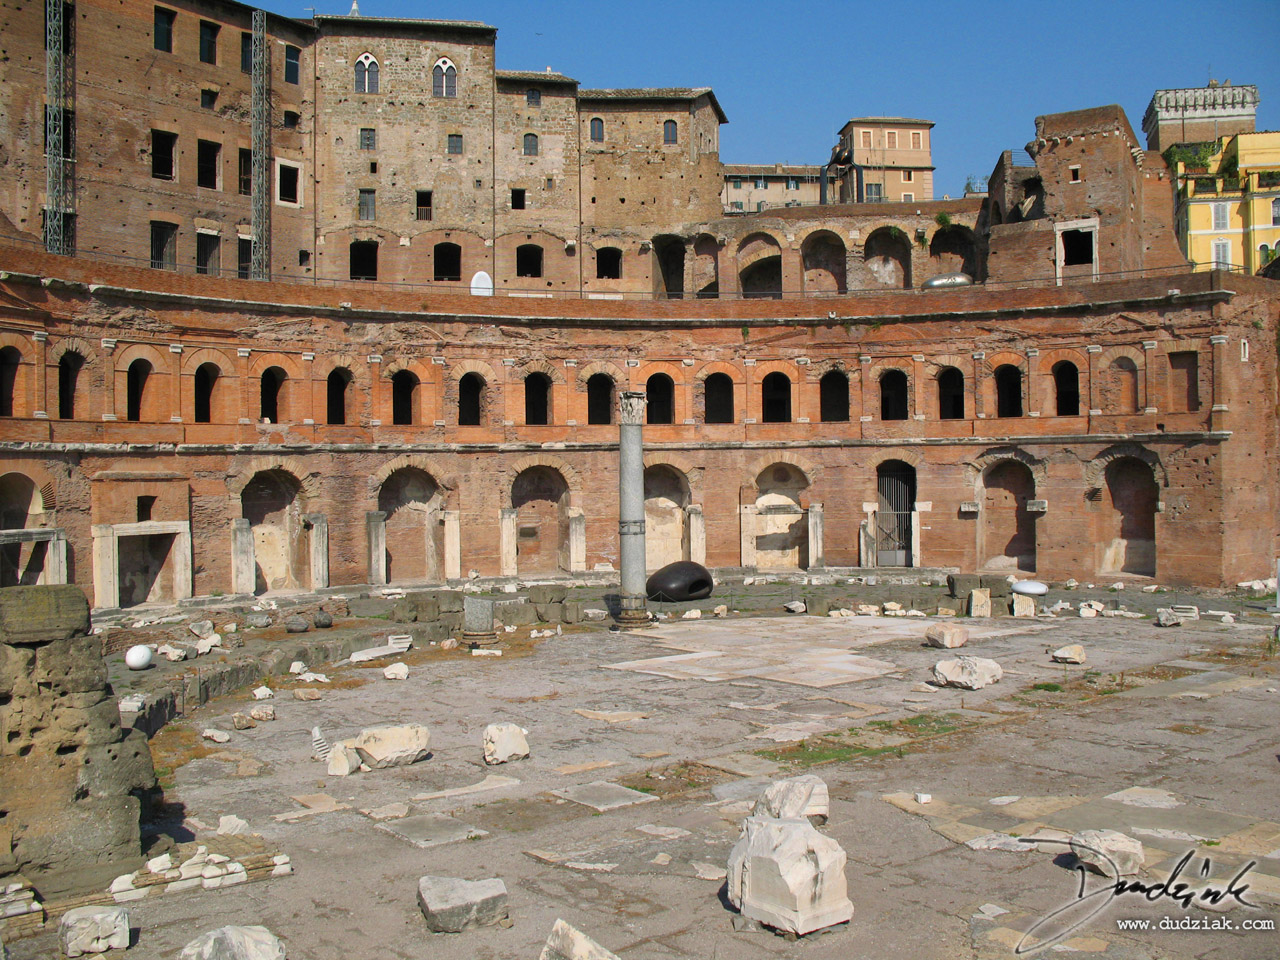 Picture of the Mercati Traianei (Trajan Markets) in Rome.